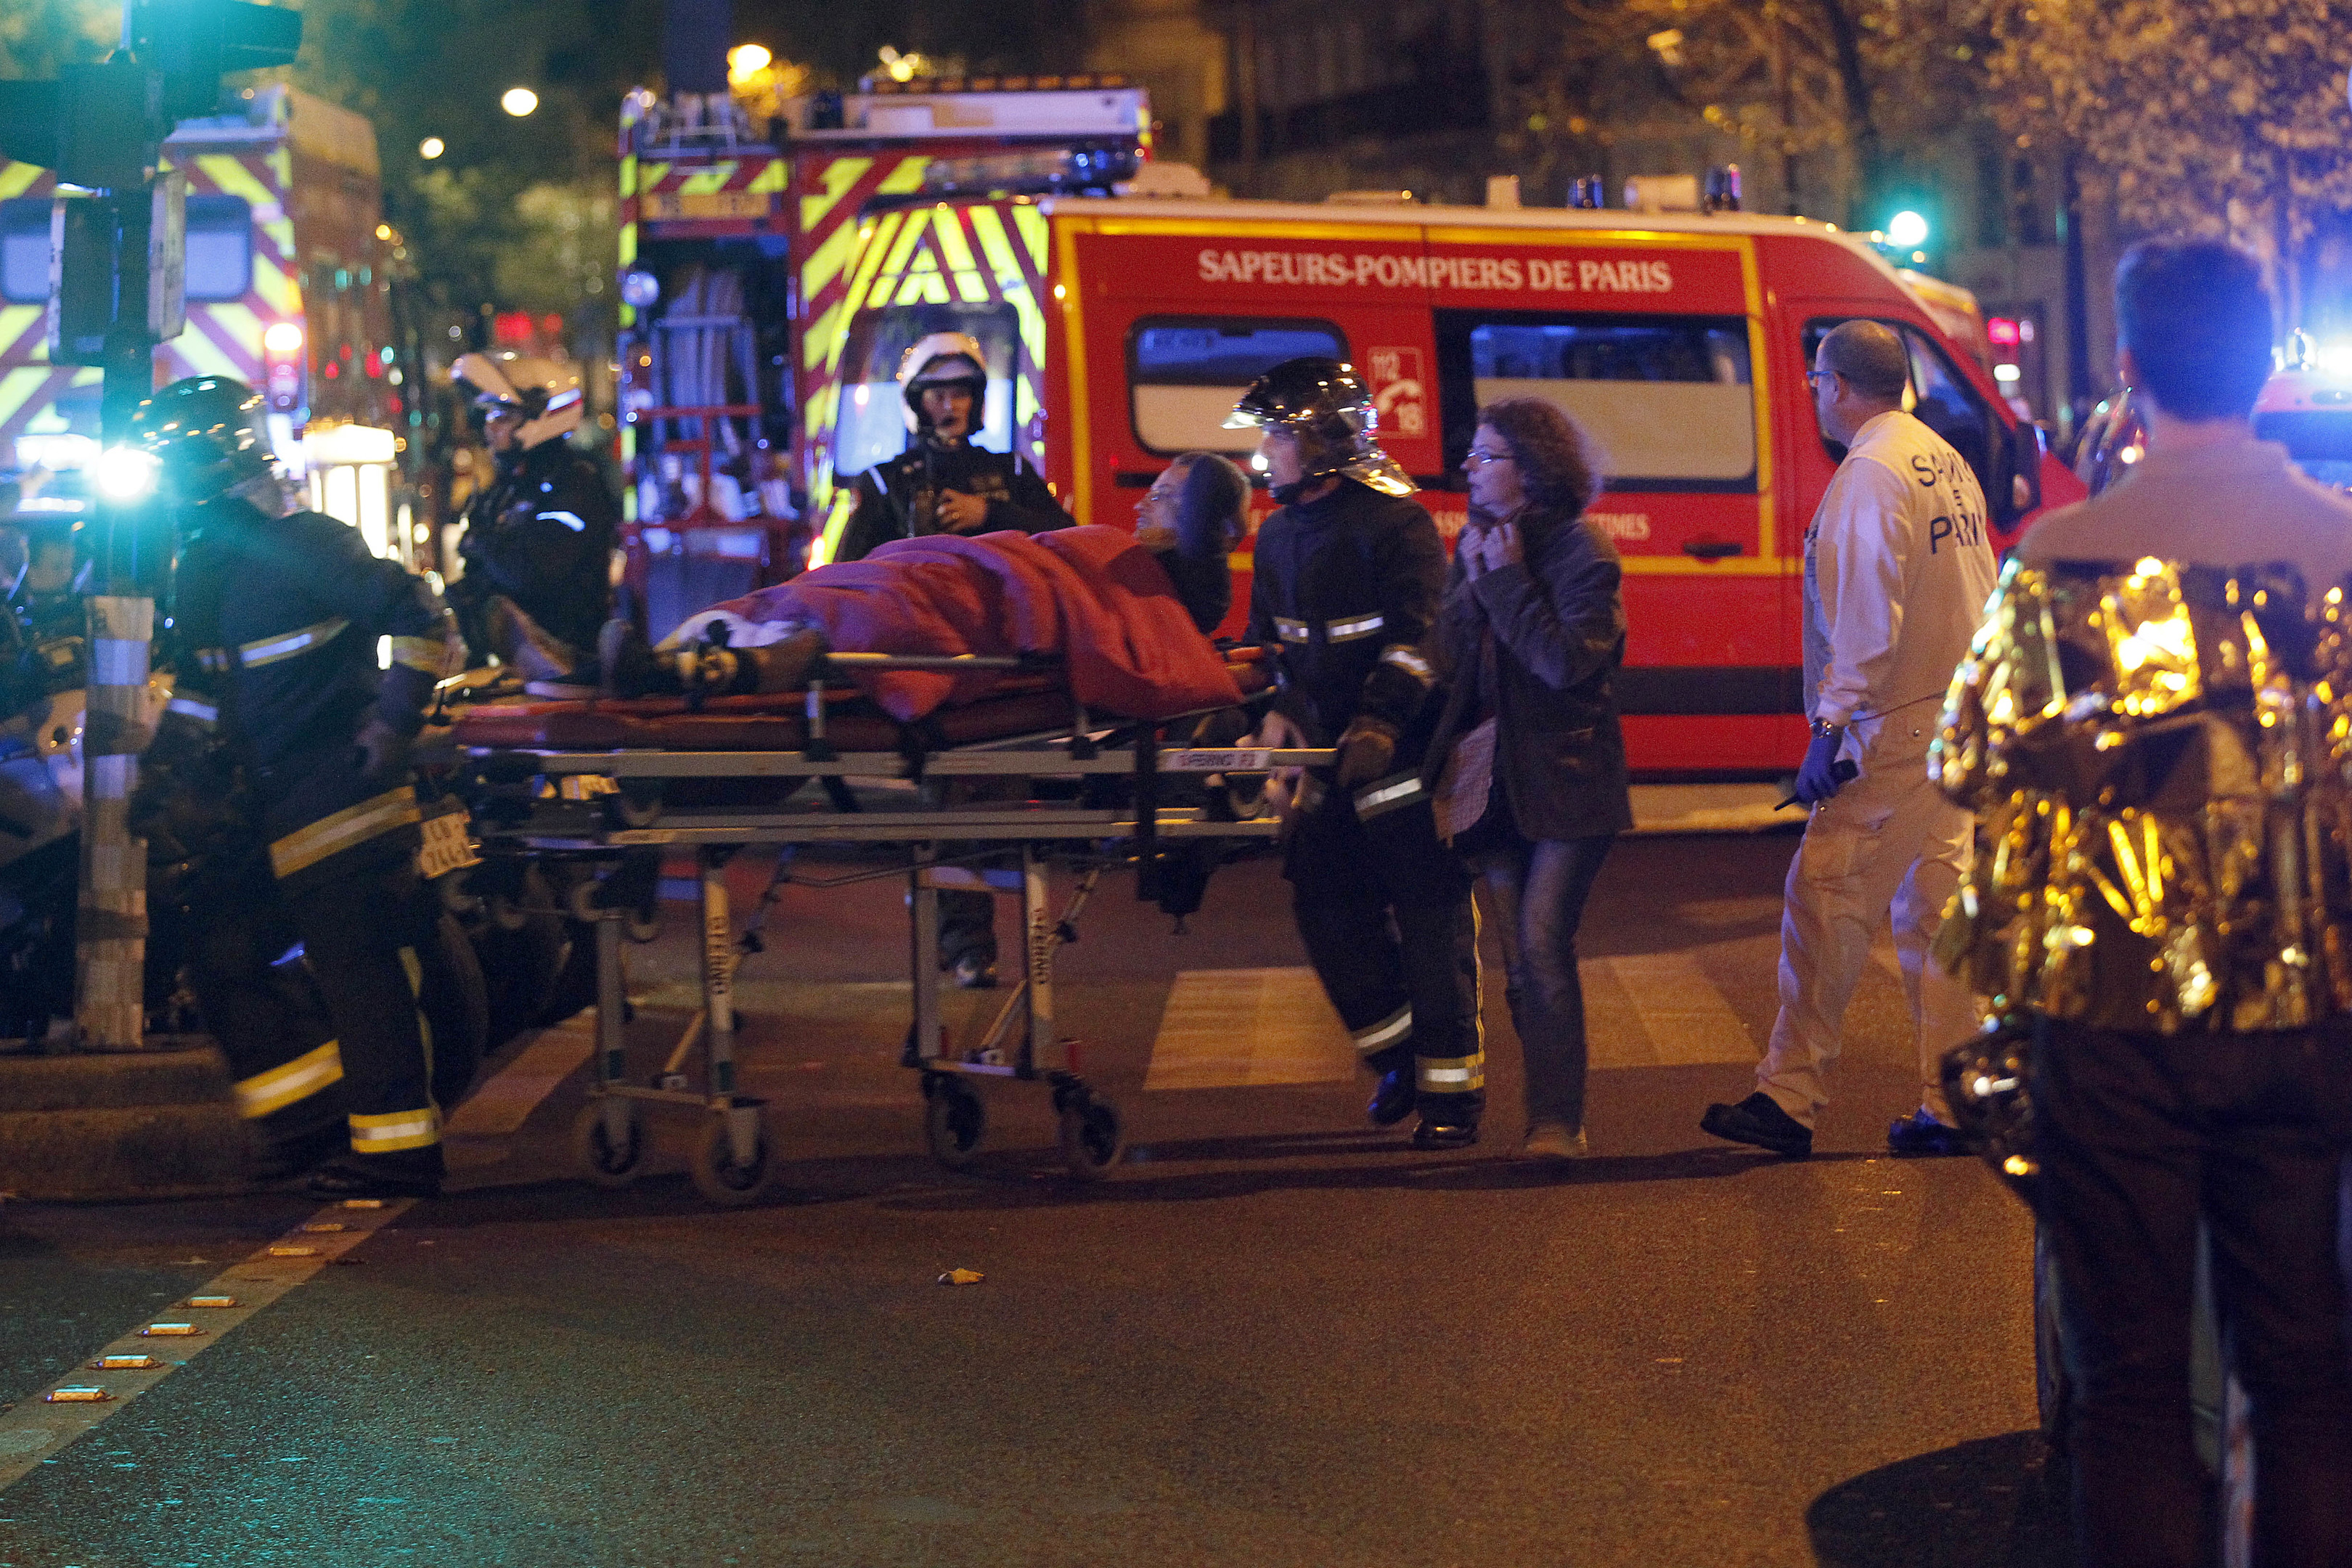 Medics move a wounded man near the Boulevard des Filles-du-Calvaire after an attack November 13, 2013 in Paris, France. (Thierry Chesnot/Getty Images)